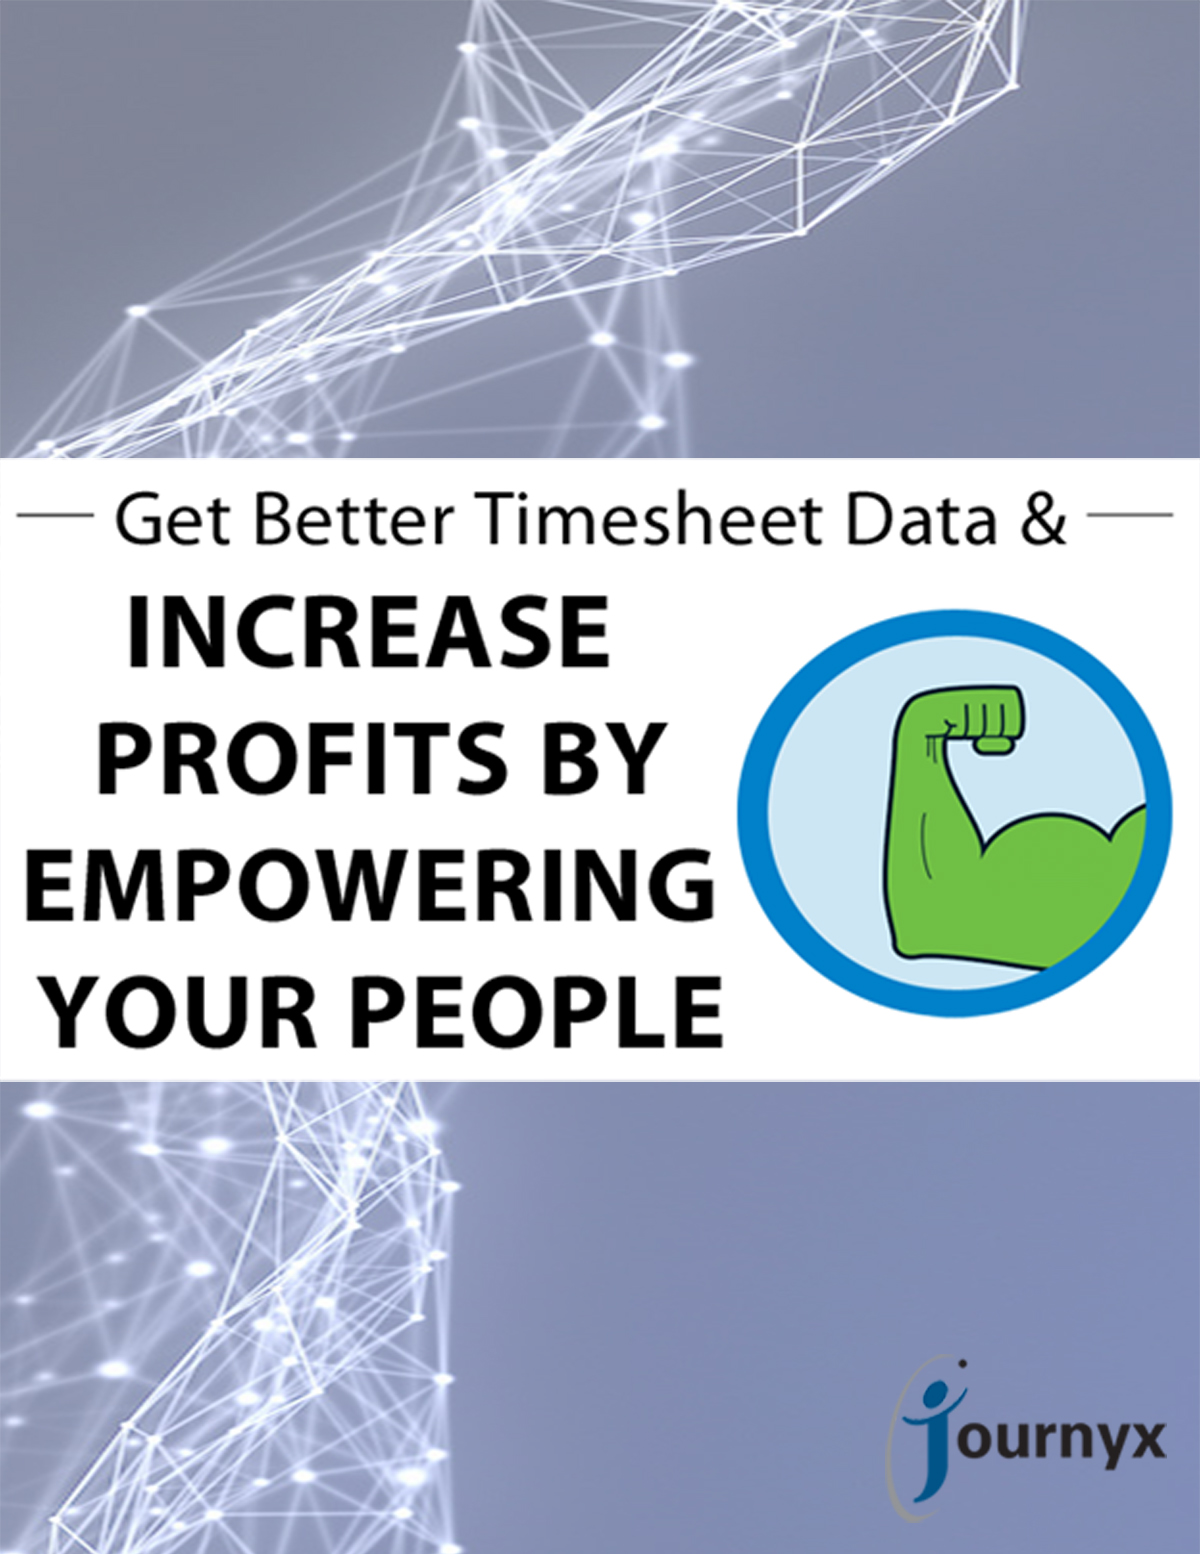 Get Better Employee Time Tracking Data